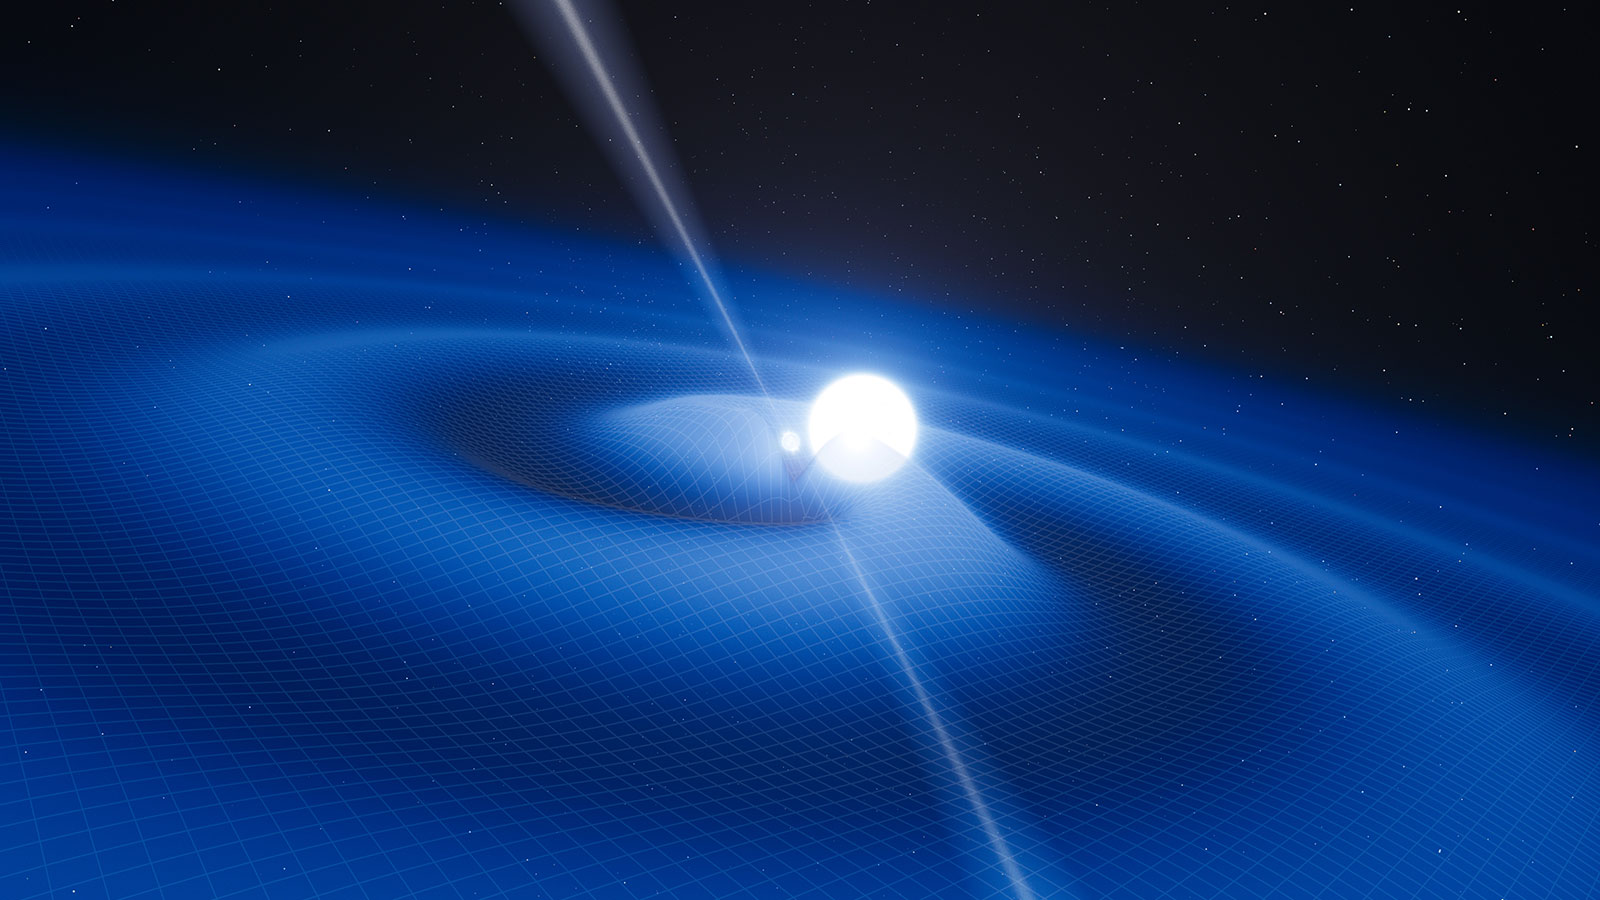 gravitational waves discovered 100 years after einstein's prediction